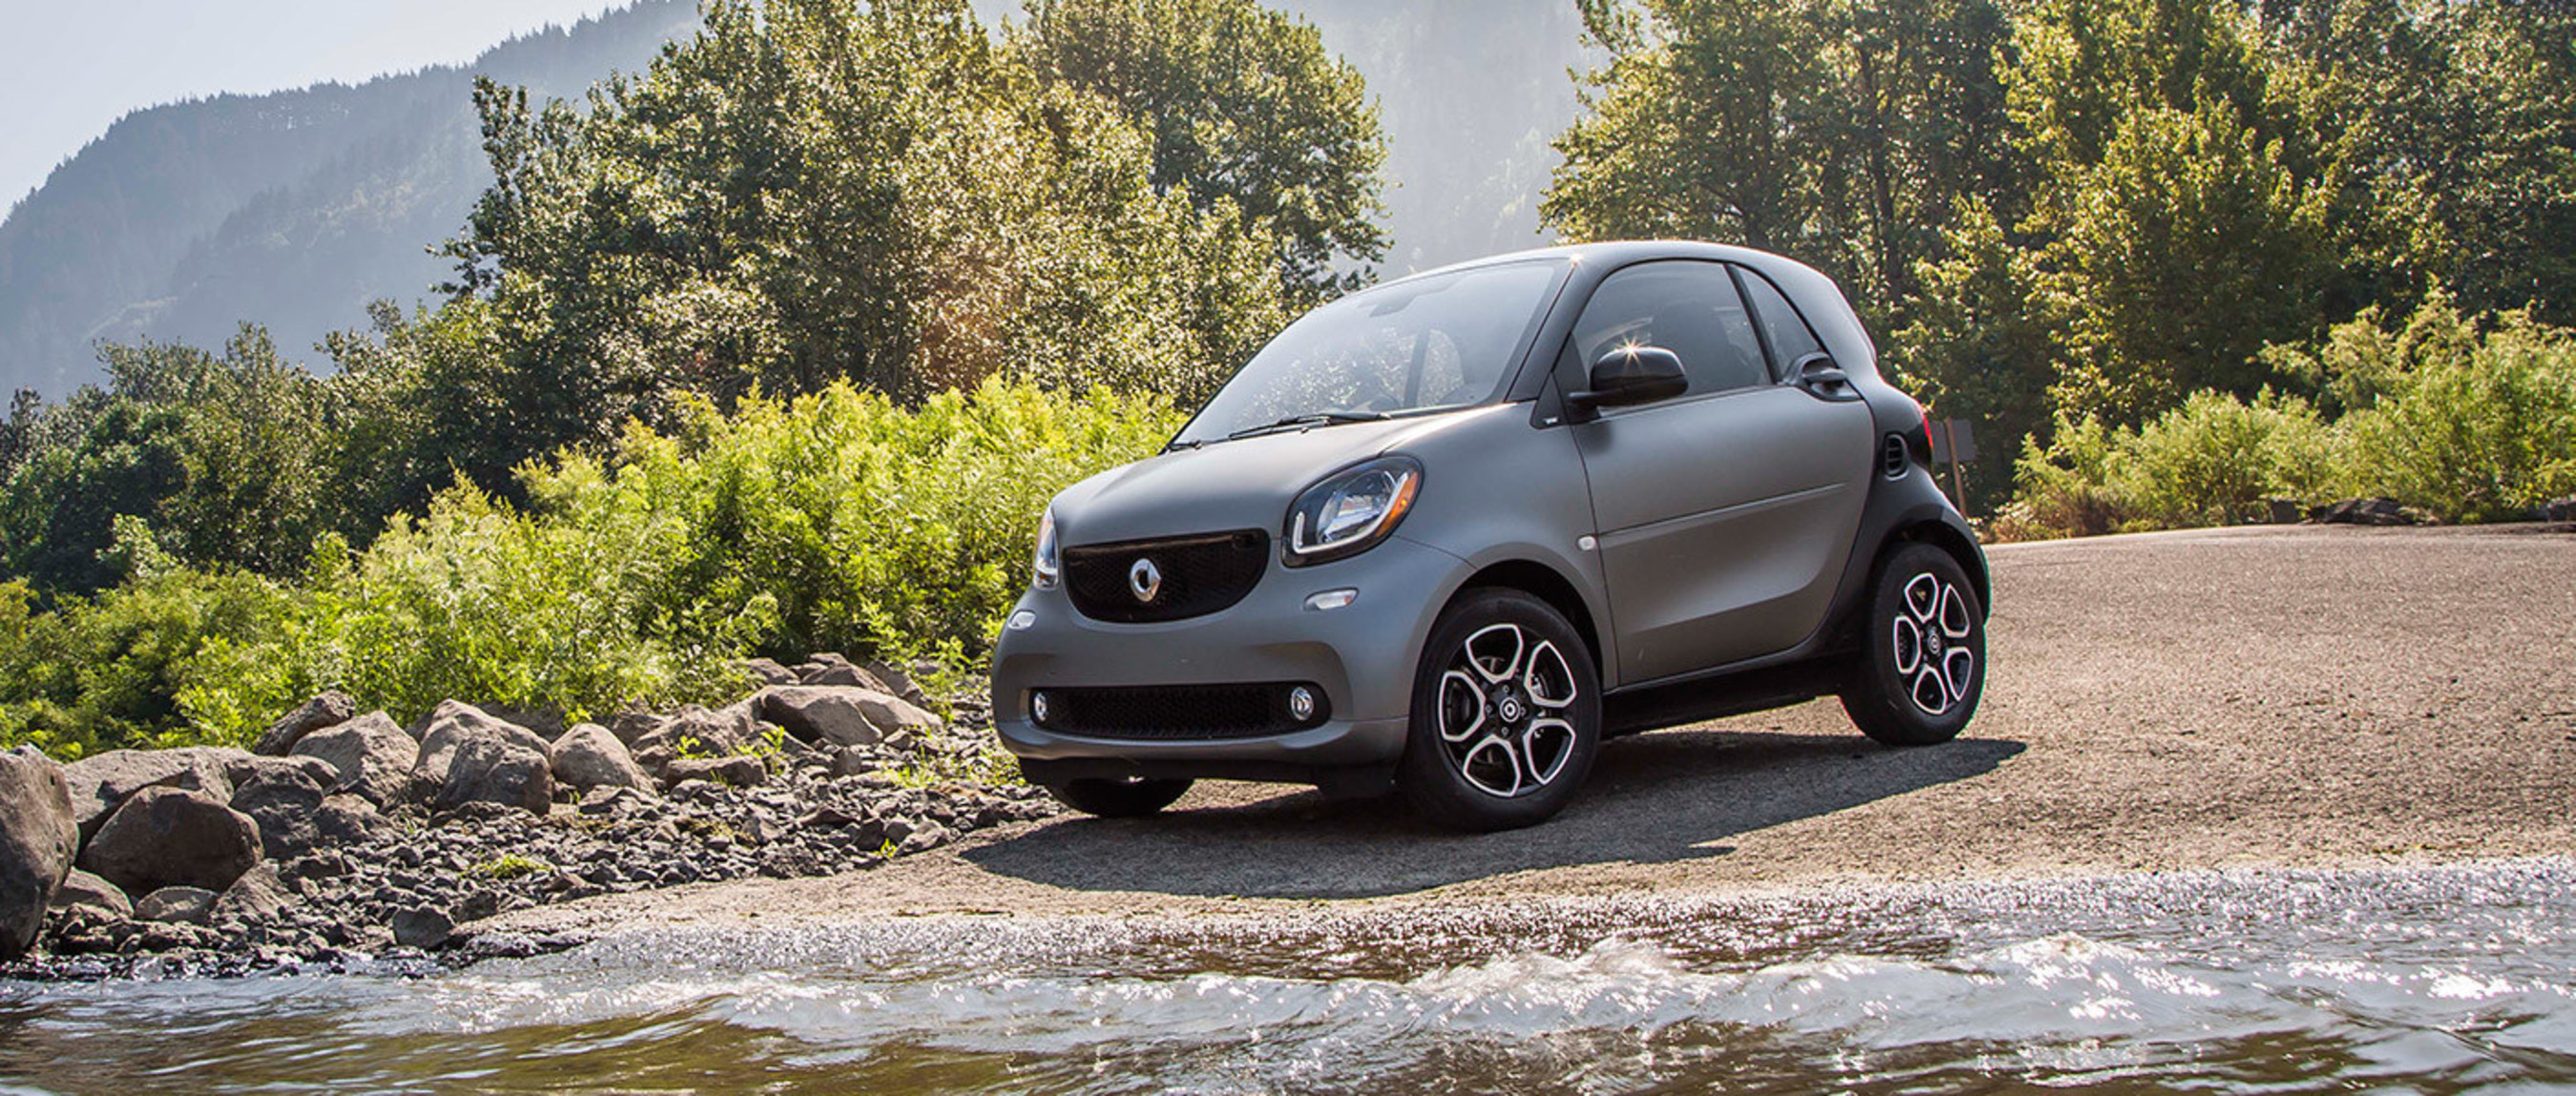 Next-generation Smart Fortwo coupe soon to arrive at Chicagoland dealership